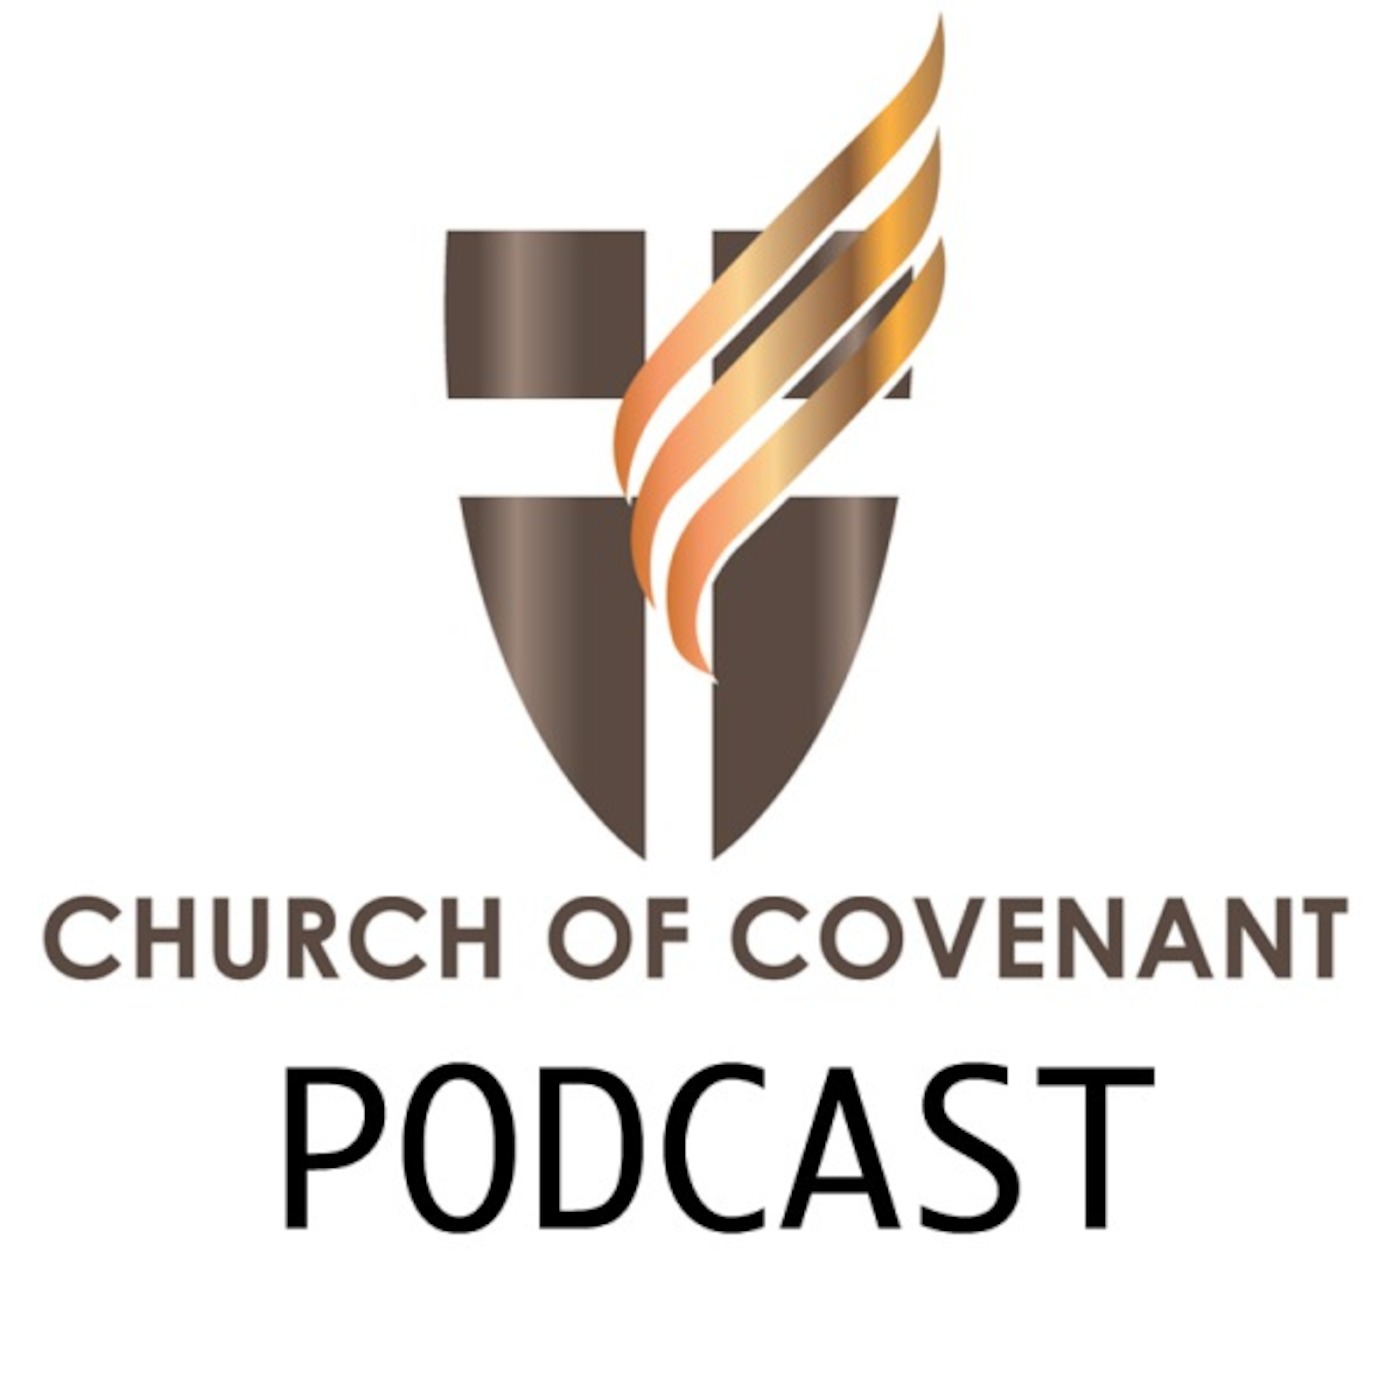 Church of Covenant Podcast